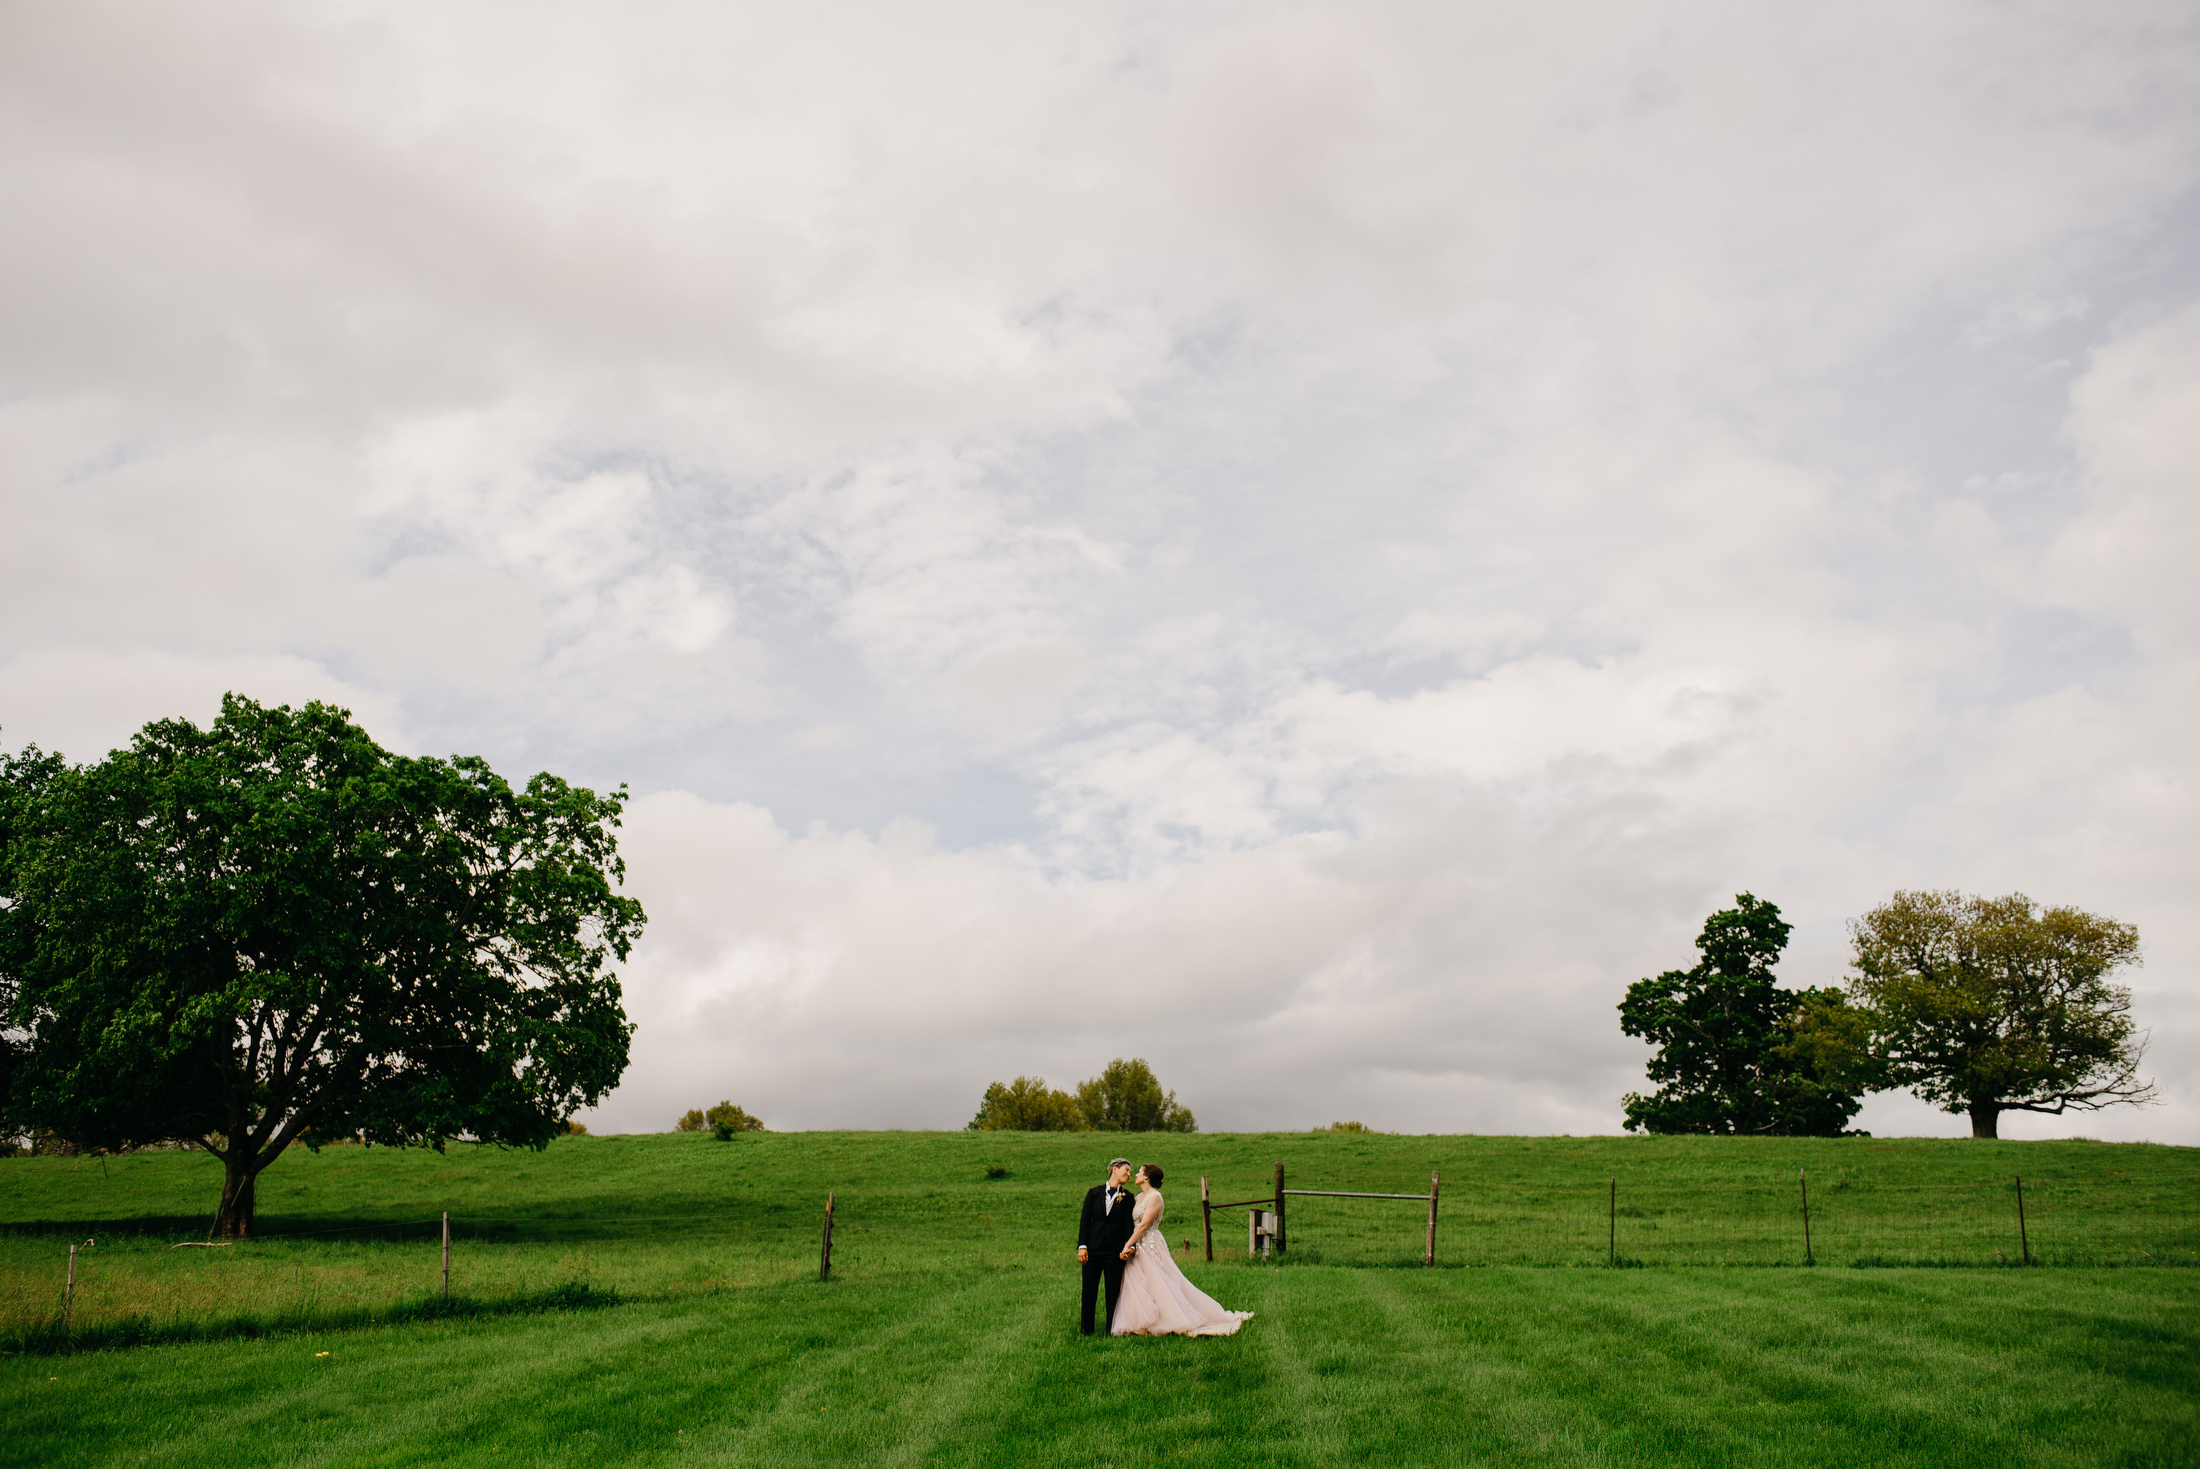 getting married and inspiration photos at gibbet hill barn in groton, ma